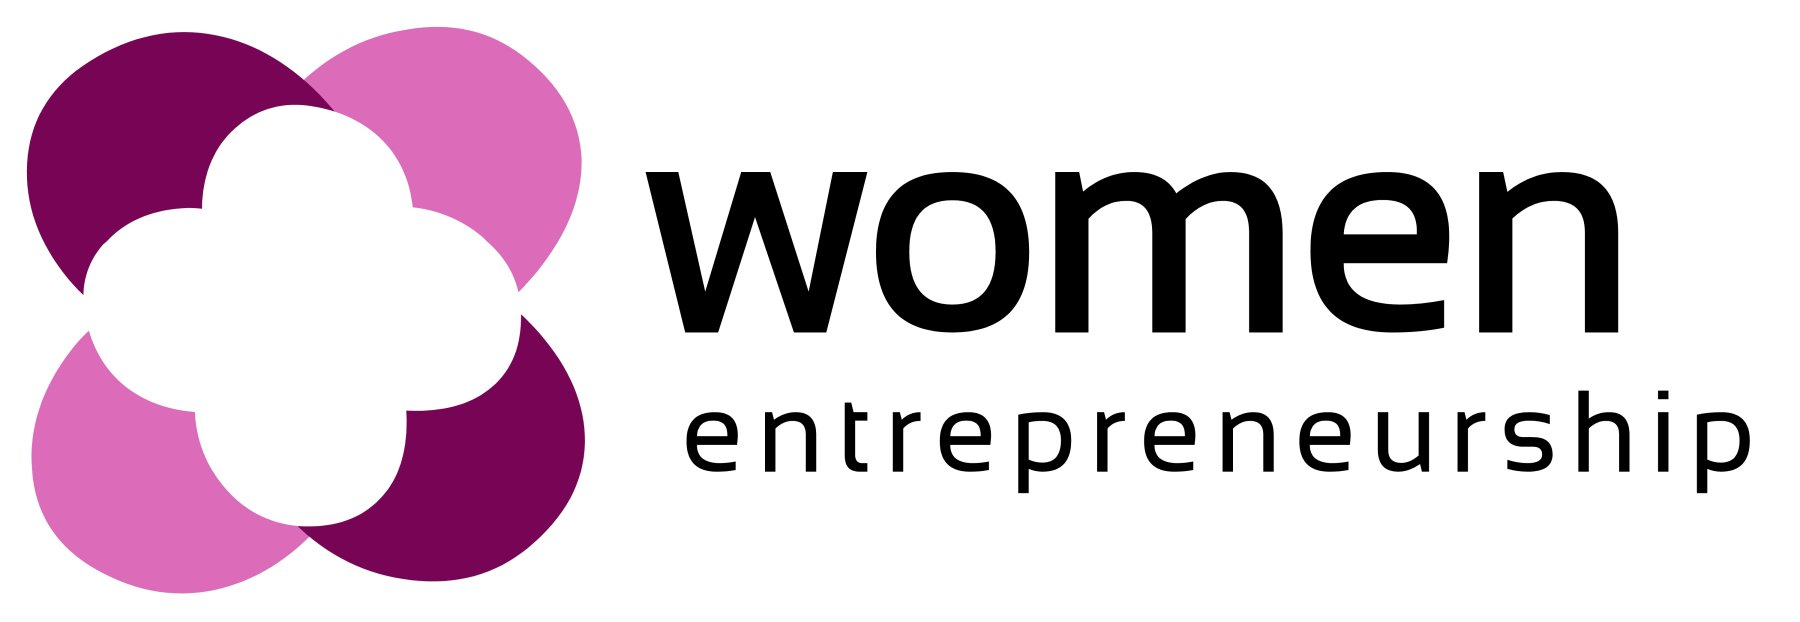 Female Entrepreneurship?